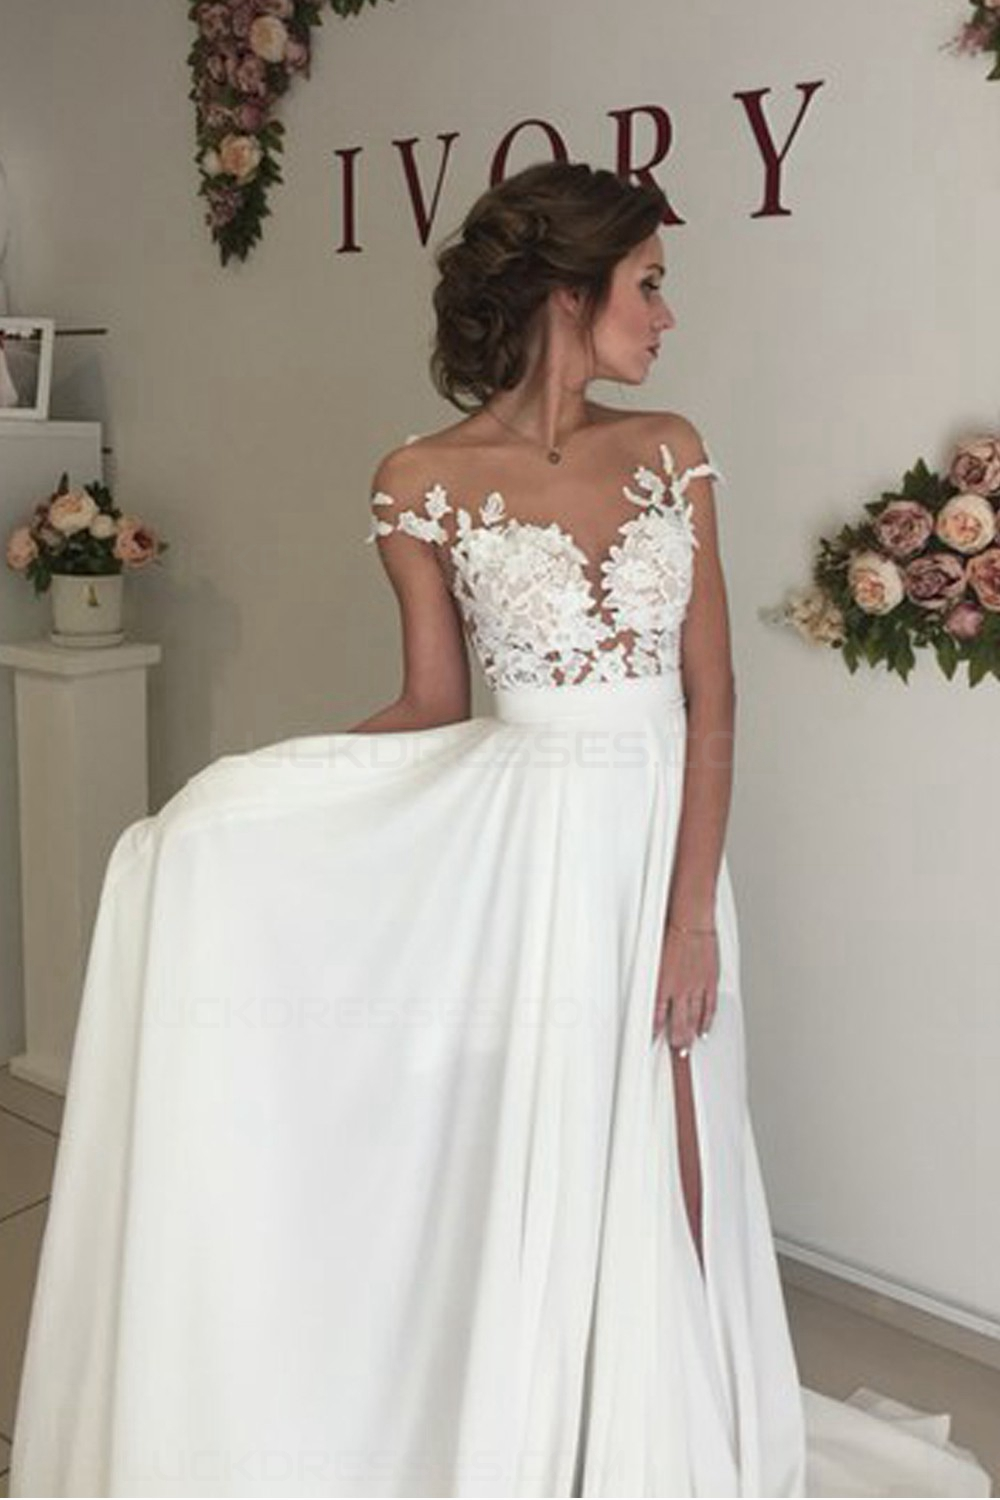 elegant illusion bodice lace chiffon wedding dresses bridal gowns 3030006. Black Bedroom Furniture Sets. Home Design Ideas